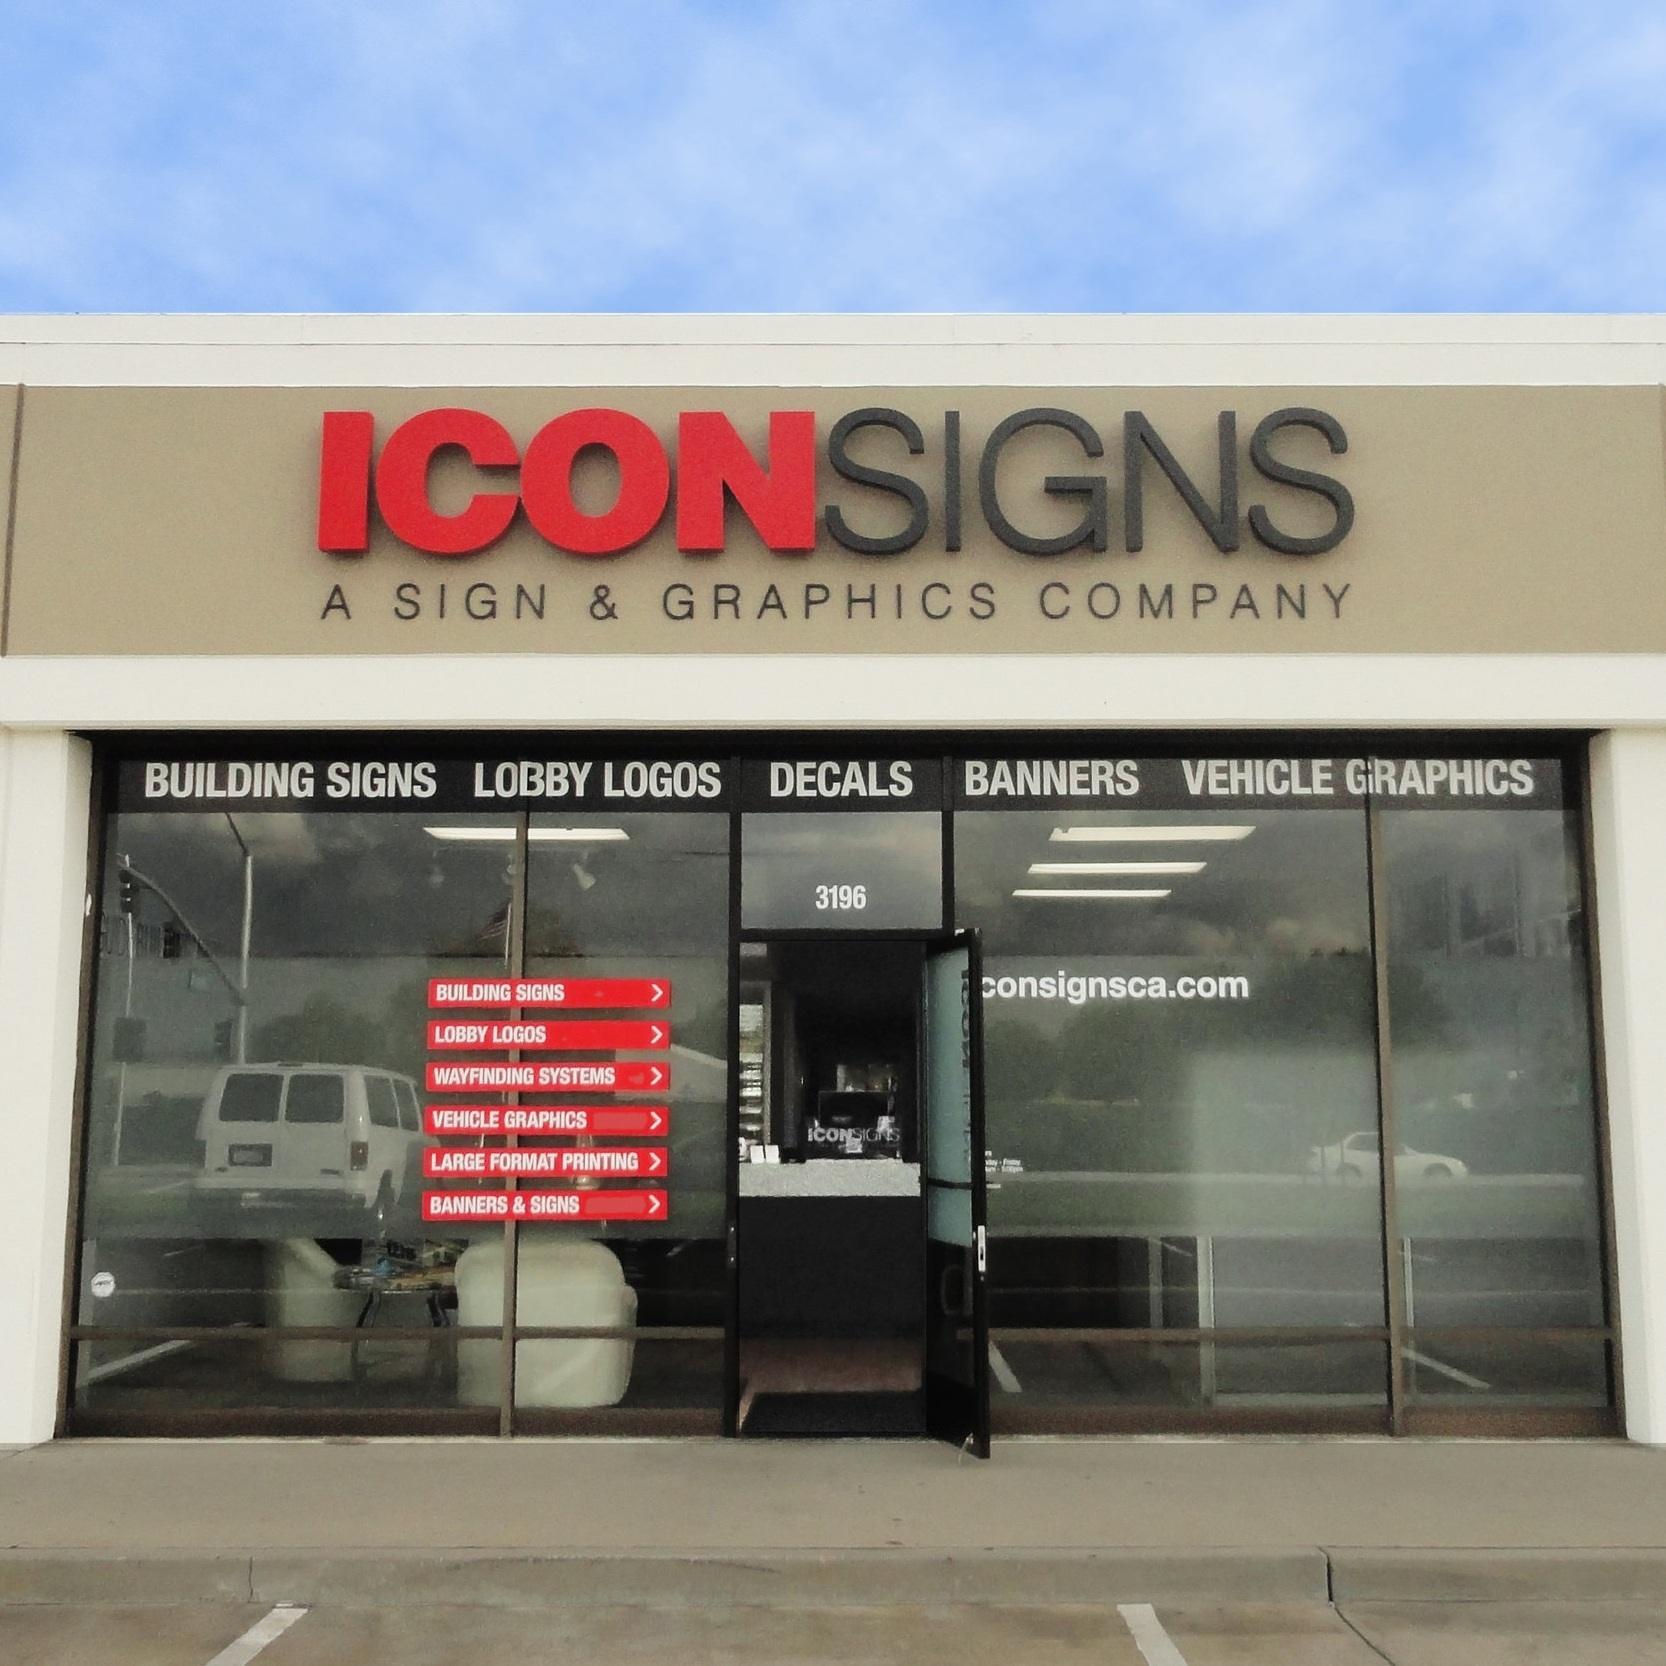 Our%2BLocation%2BStorefront%2BSign%2BCompany%2BIcon%2BSigns